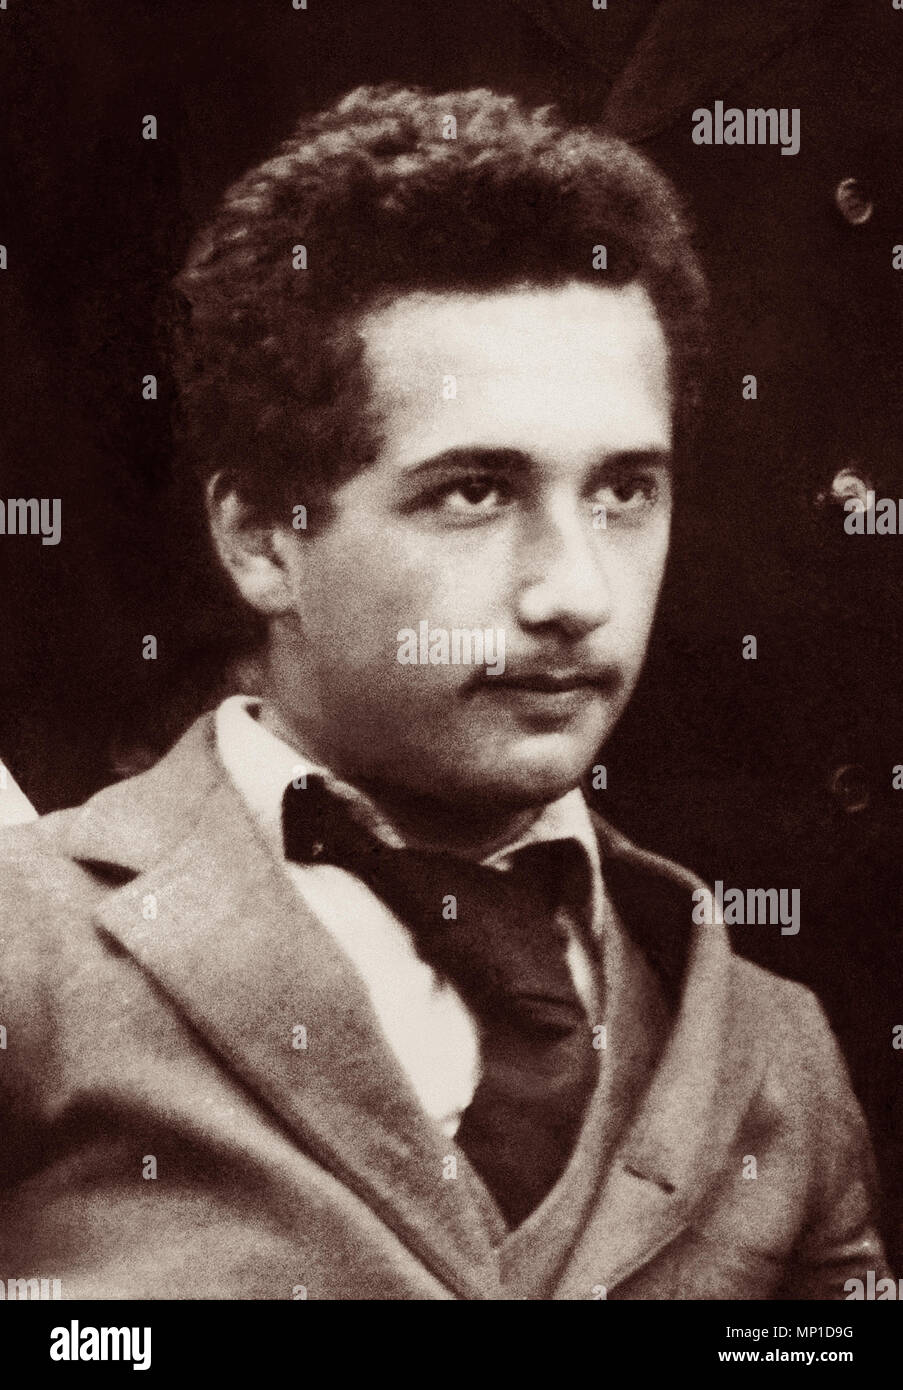 Albert Einstein (1879-1955) as a young man in 1896. - Stock Image